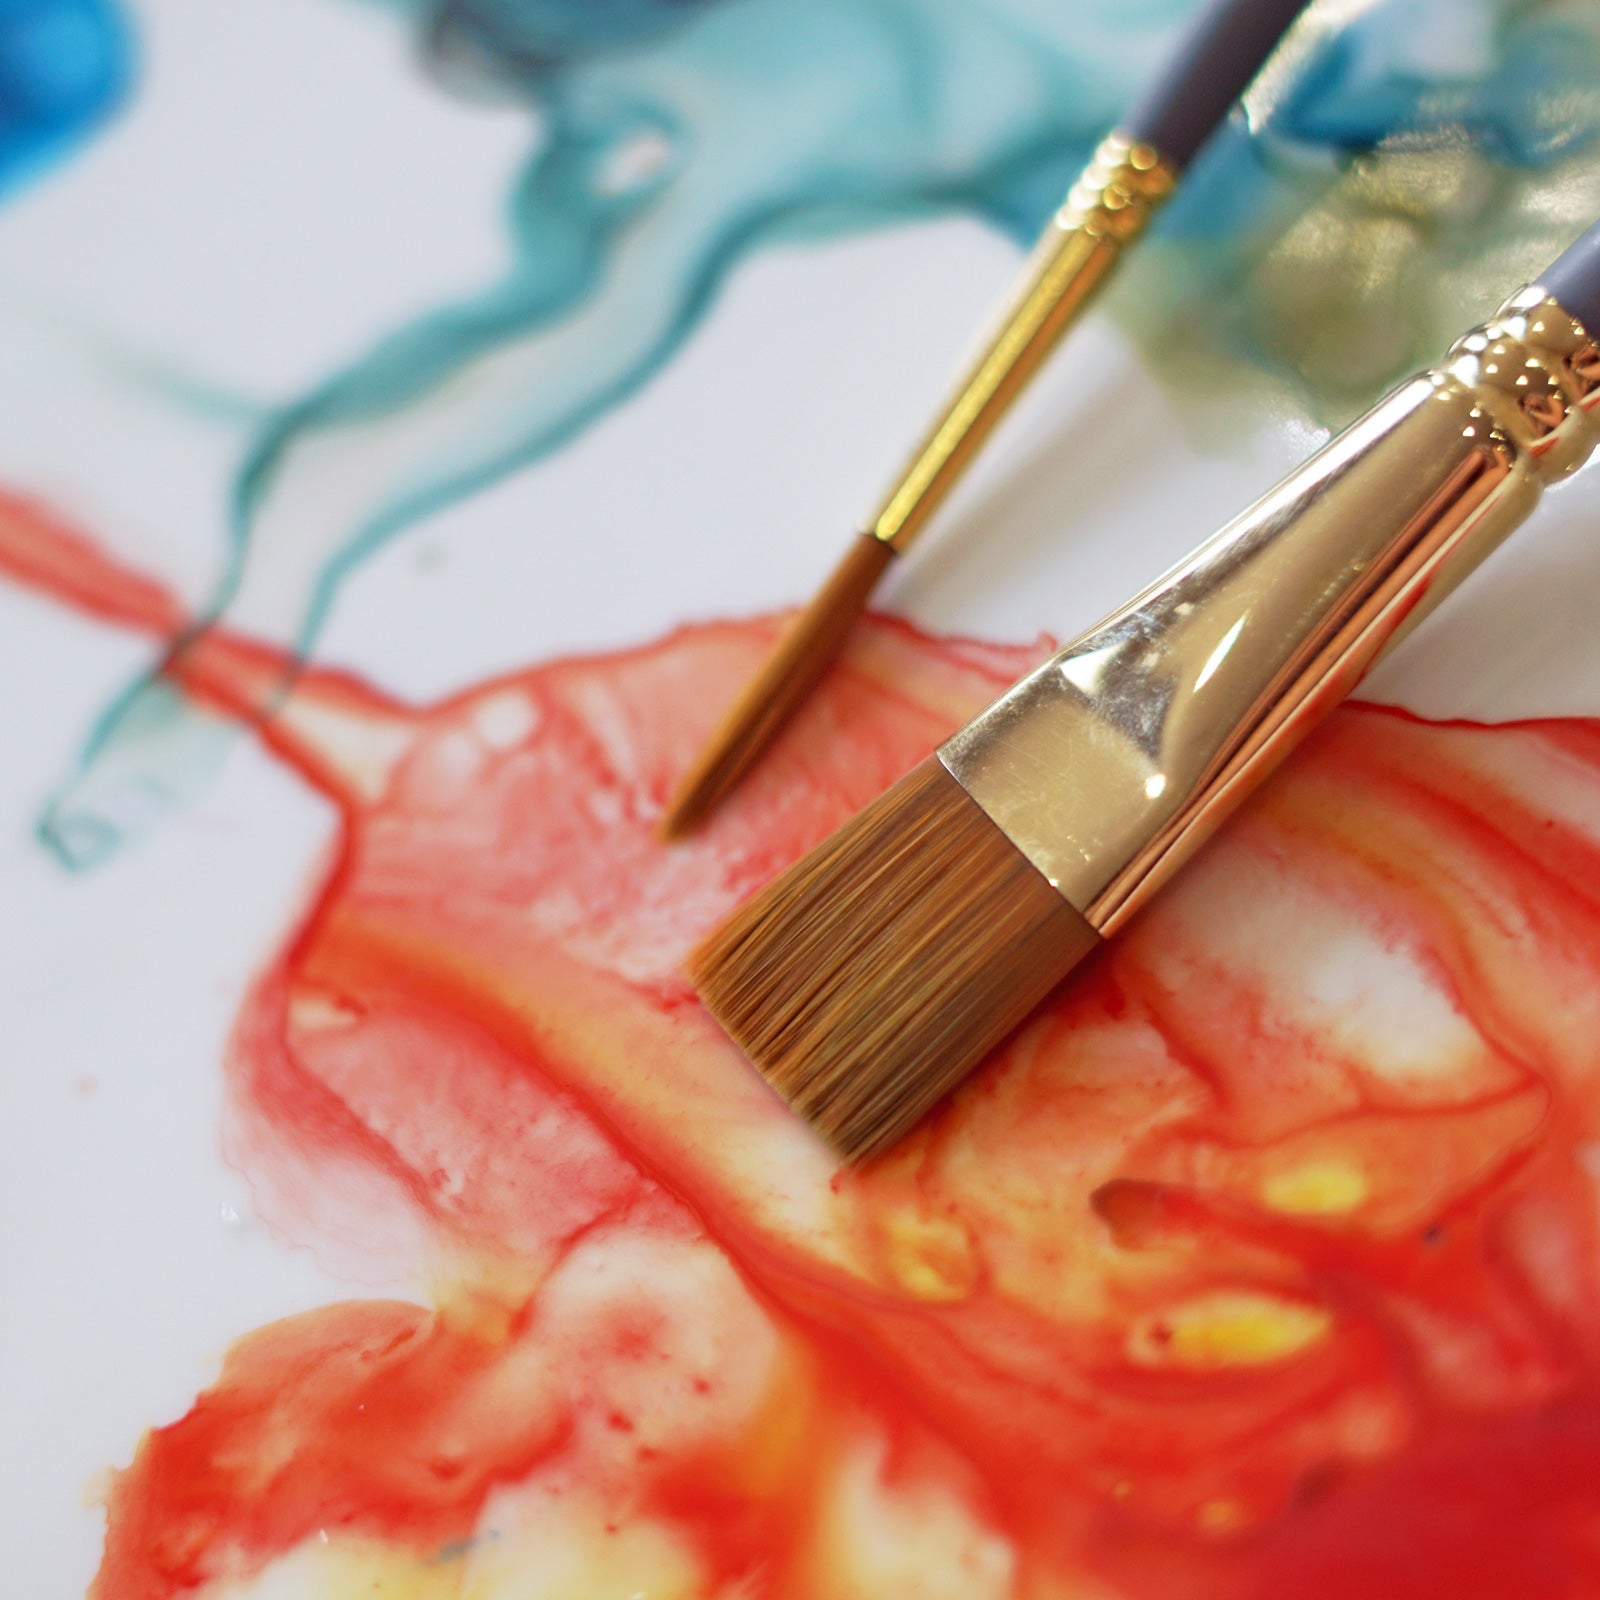 close up of two paintbrushes on a paint palette